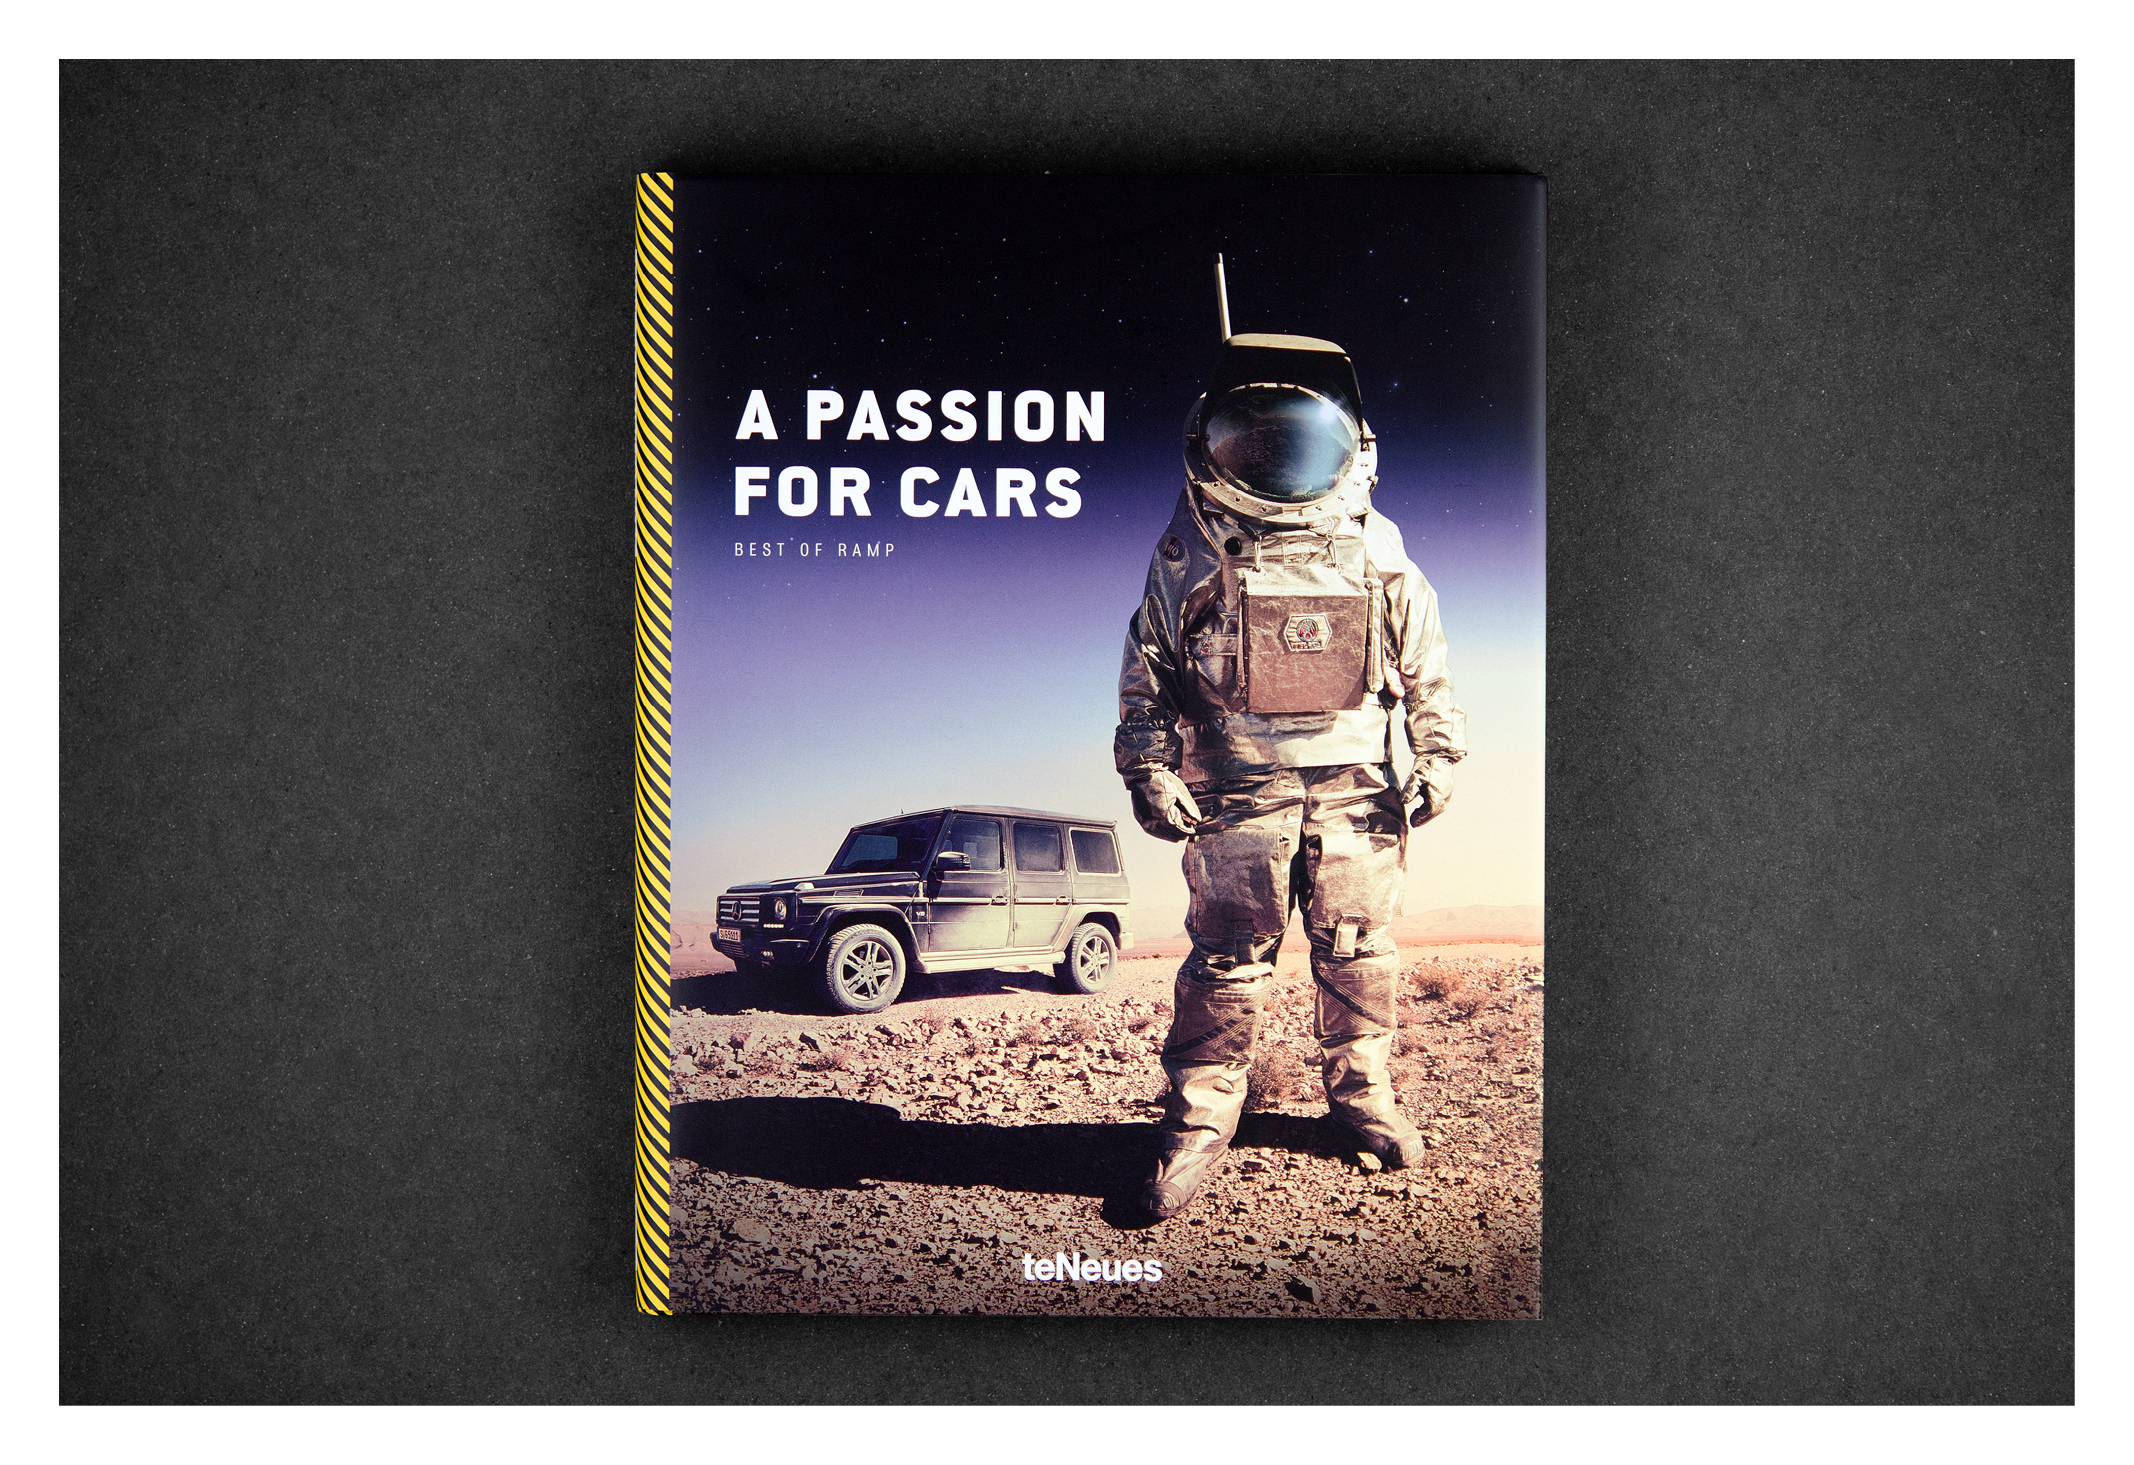 ramp A Passion For Cars Hardcover Reproshot